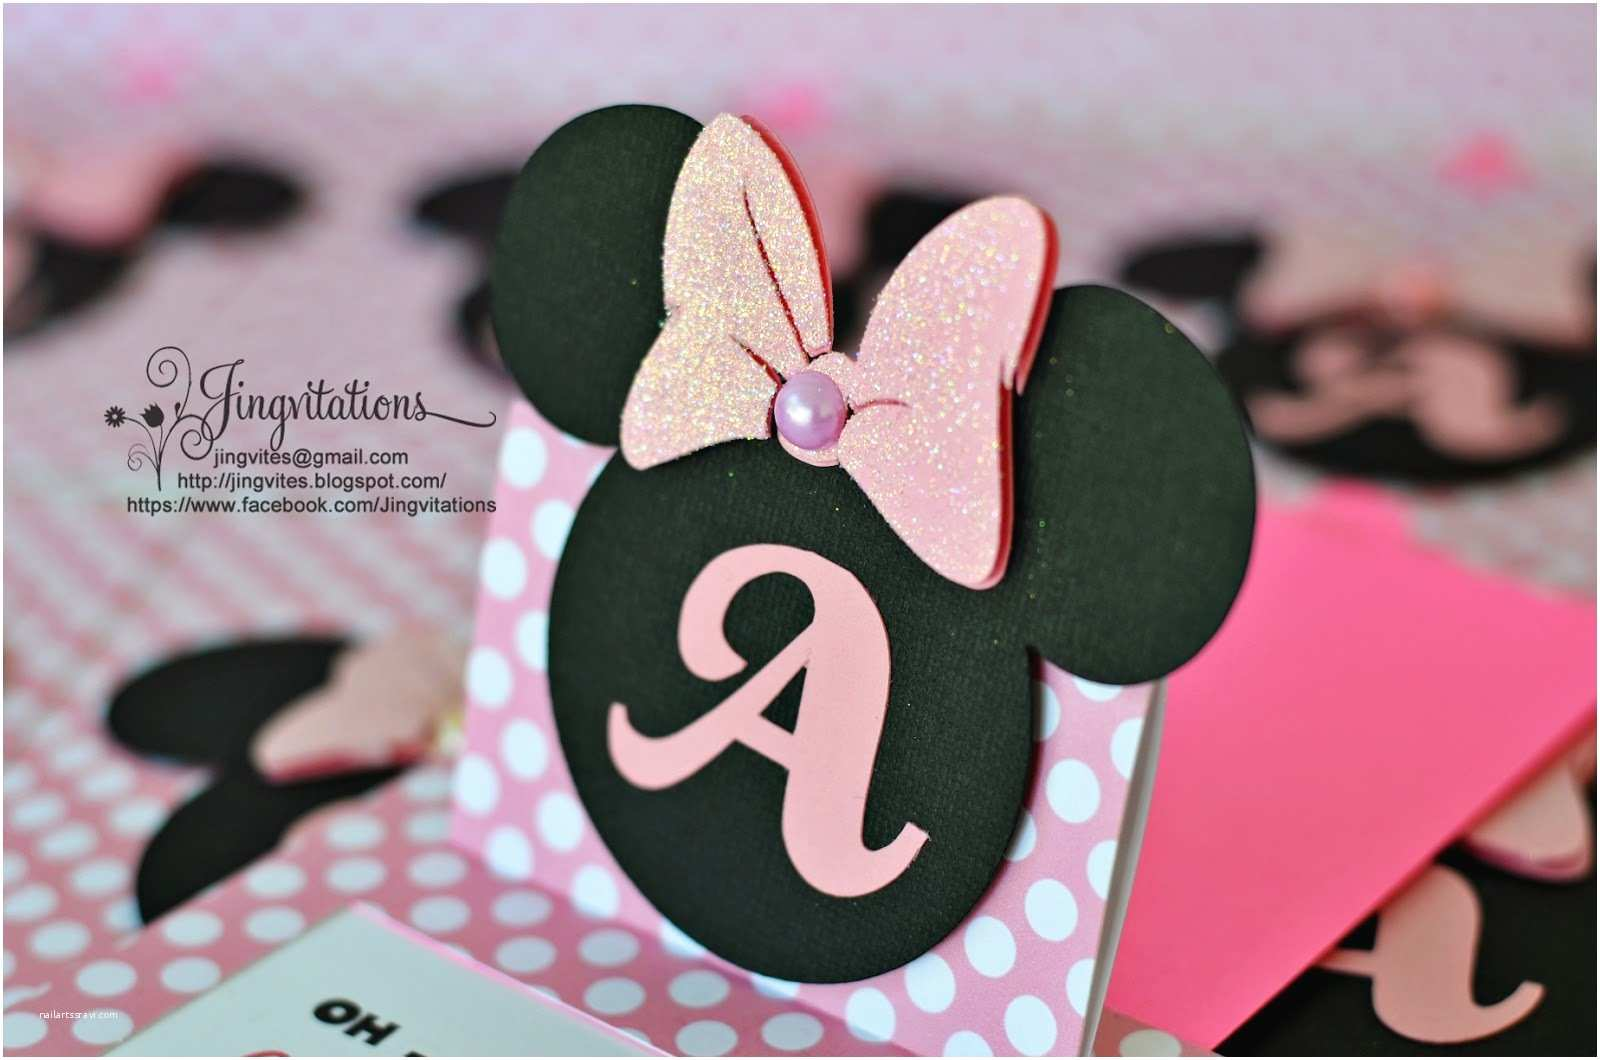 Minnie Mouse Birthday Invitations Personalized Jingvitations Cricut Handmade Minnie Mouse Pop Up Invitations